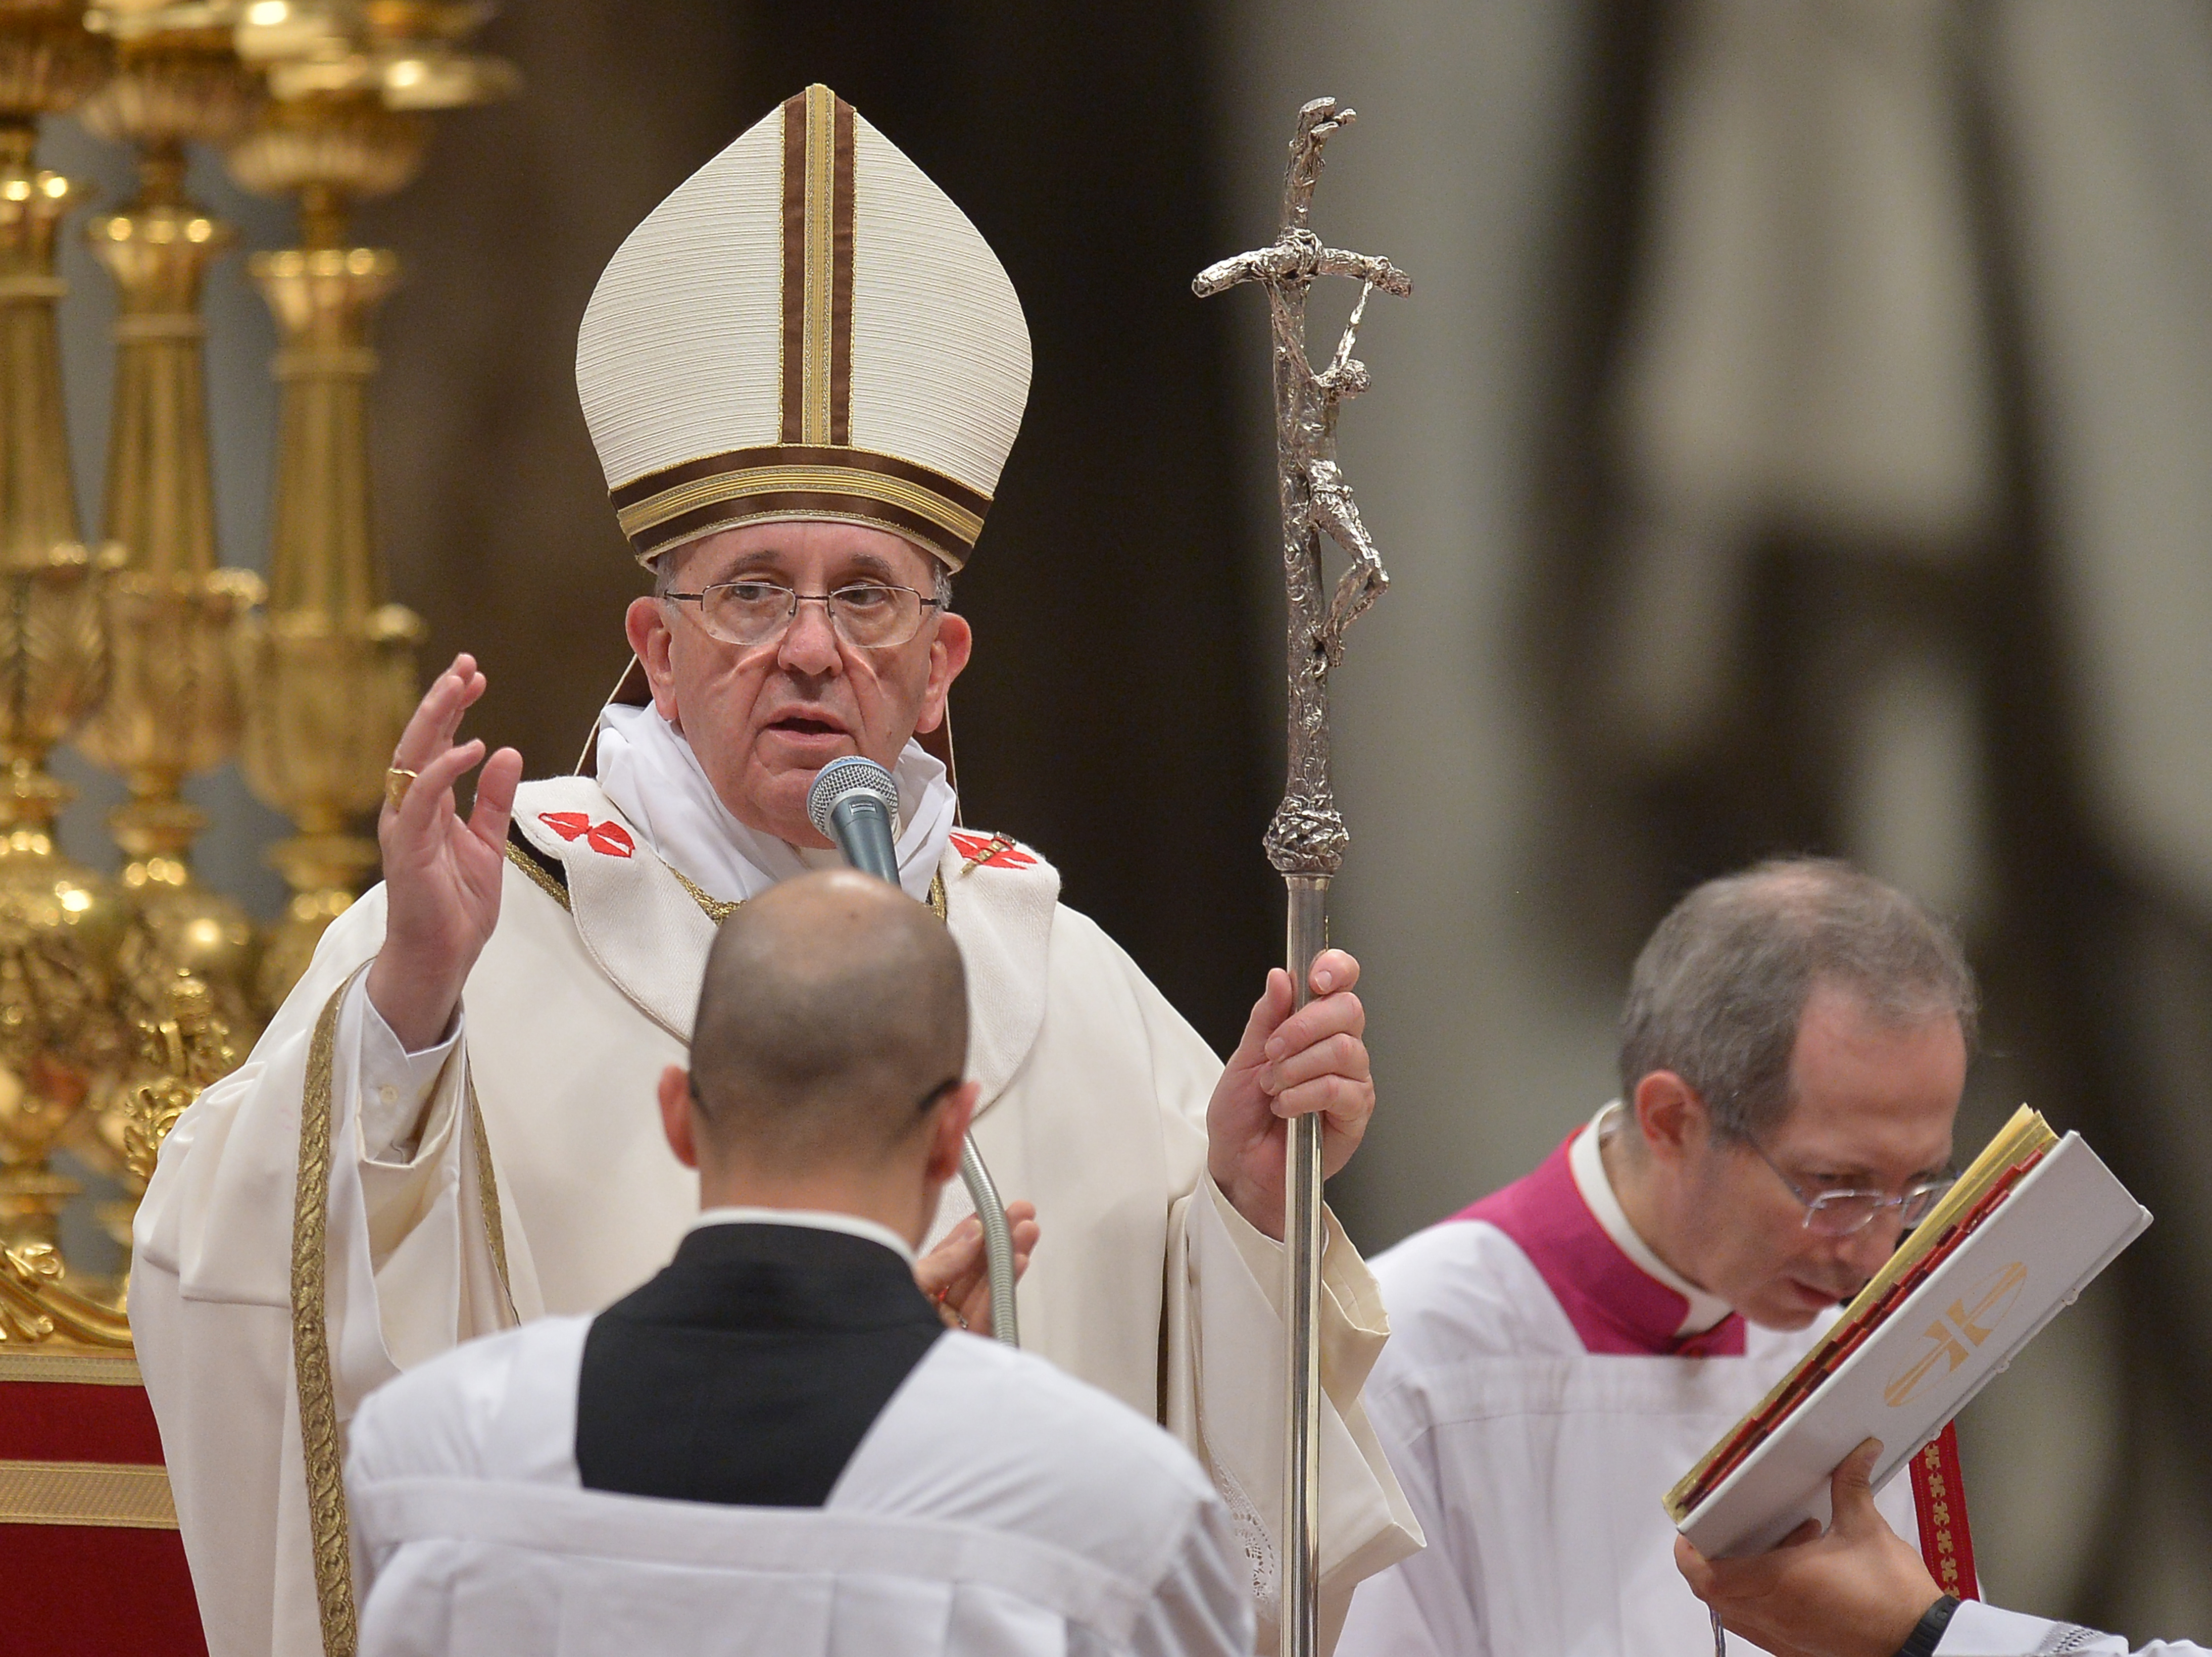 Pope Francis Preaches Message Of Love At Christmas Eve Mass | KUT